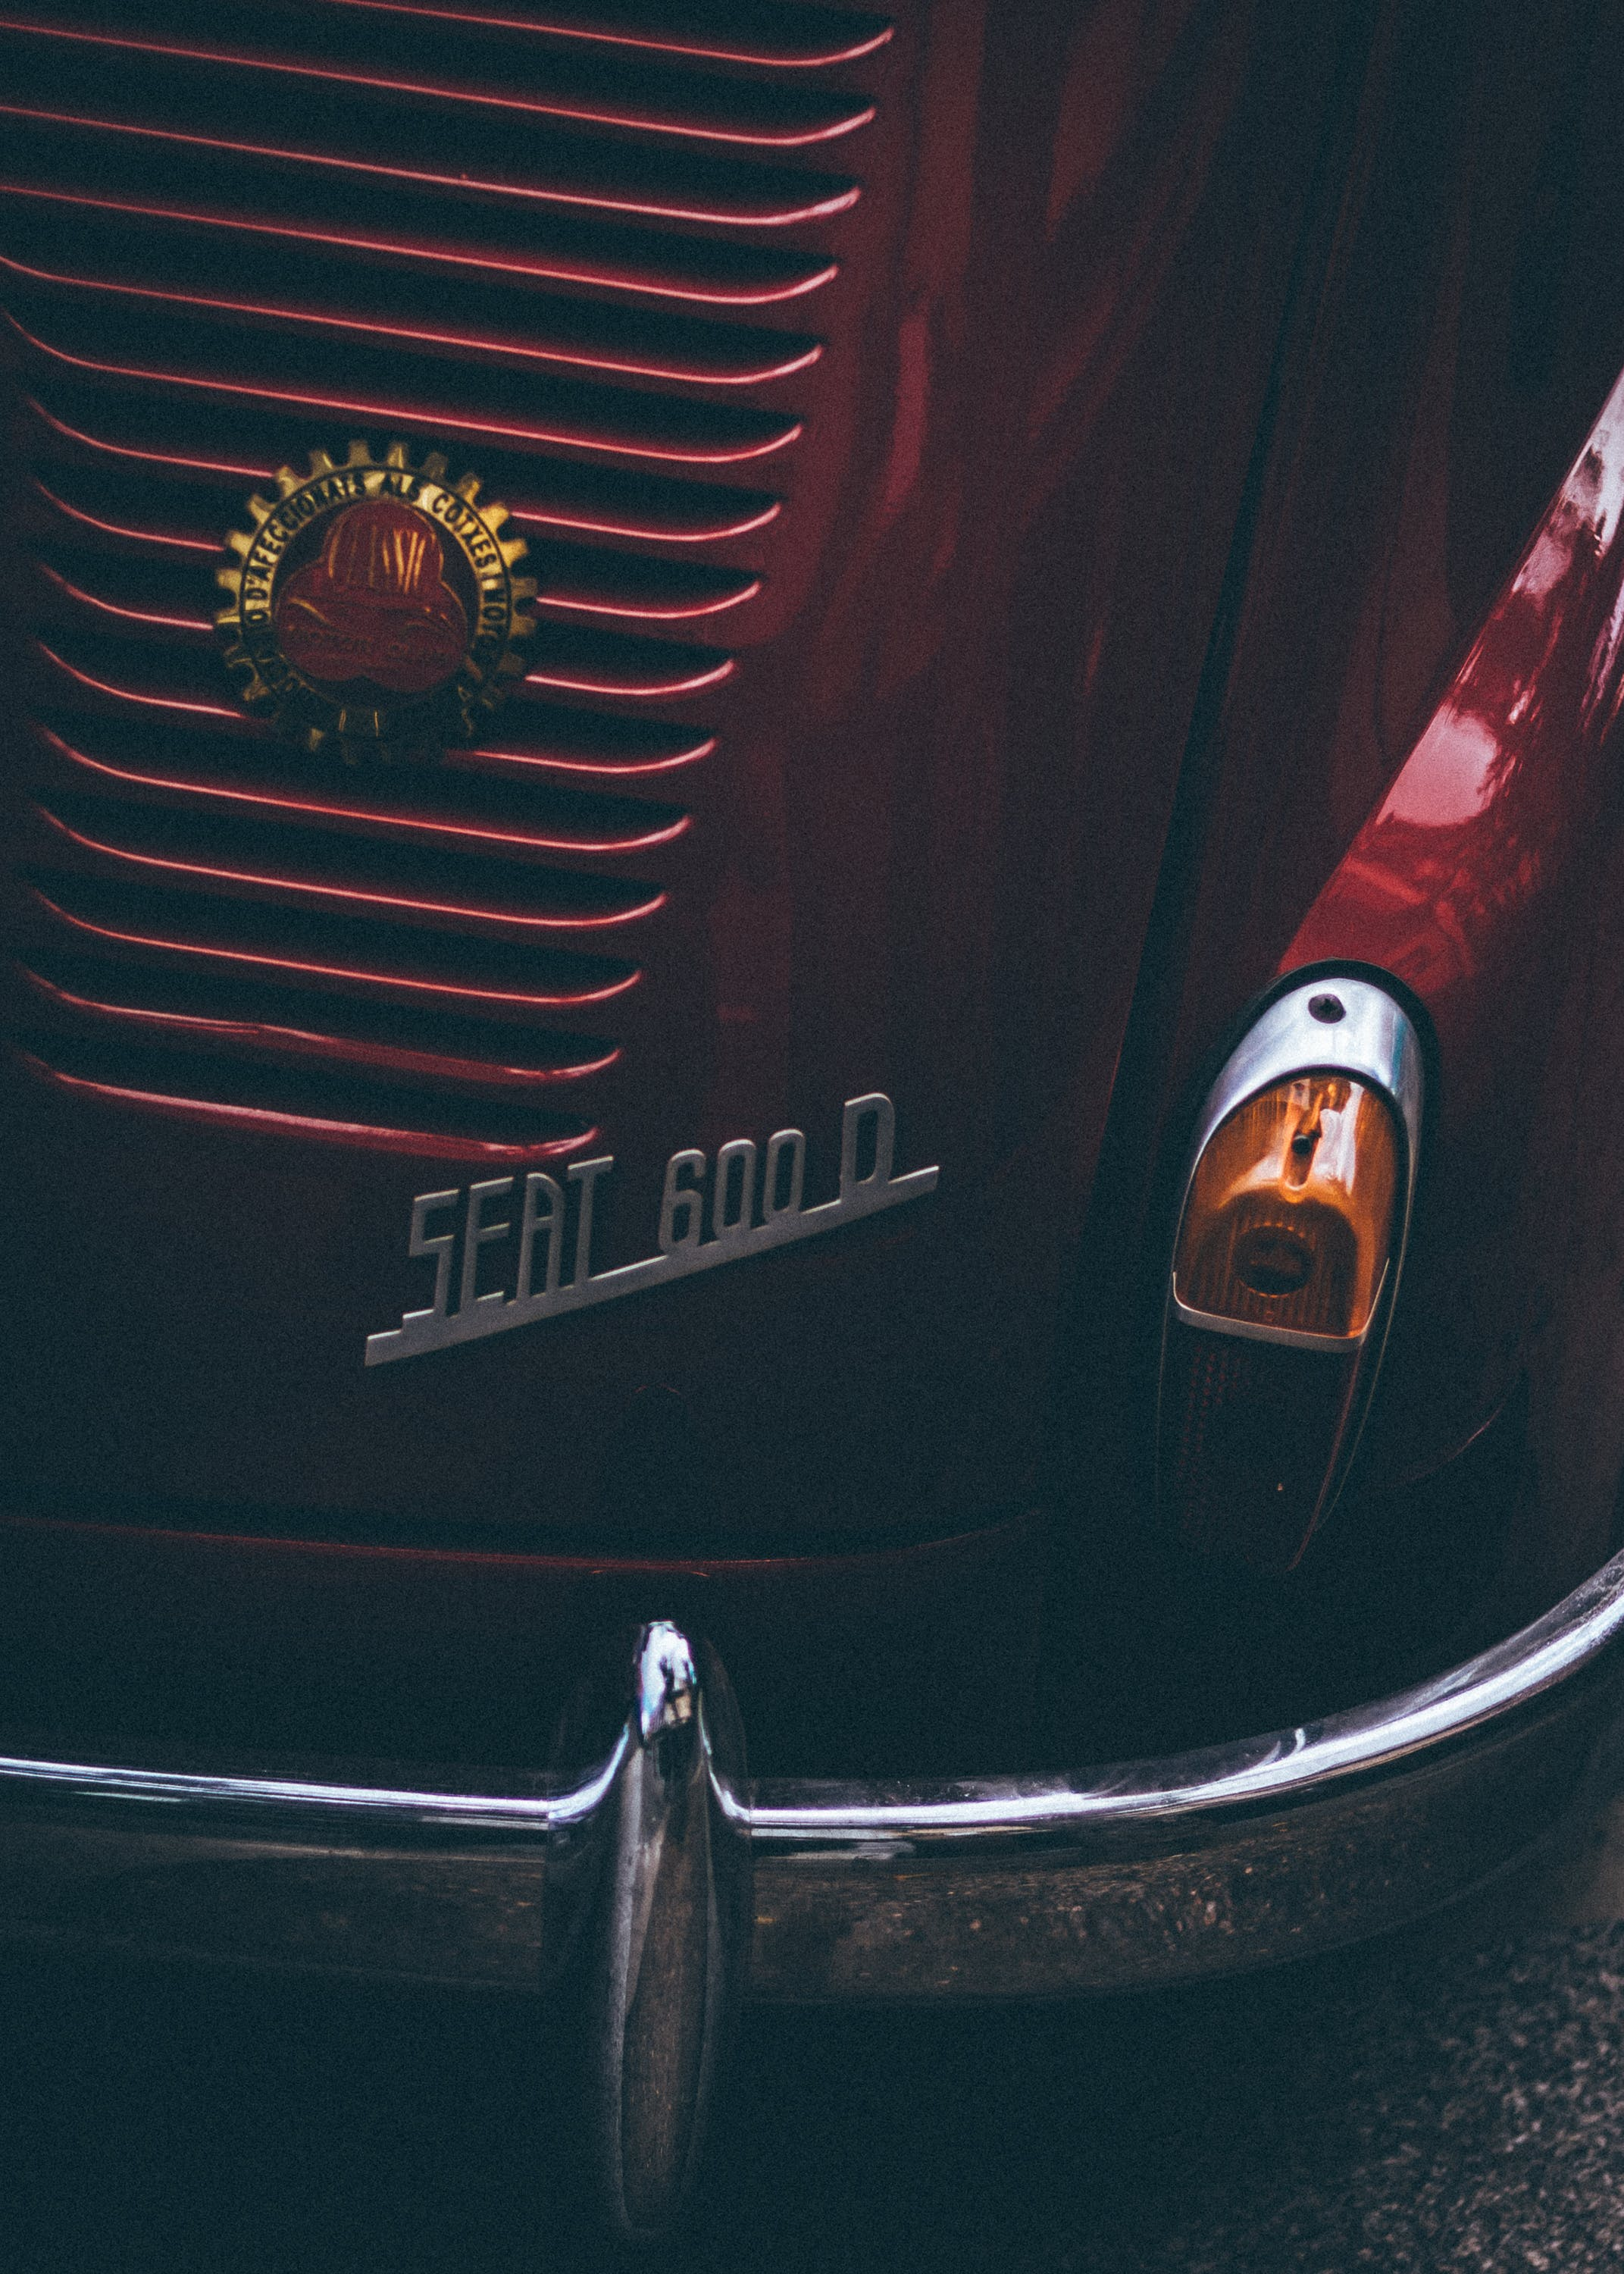 Close-up Photography of Seat 600 D